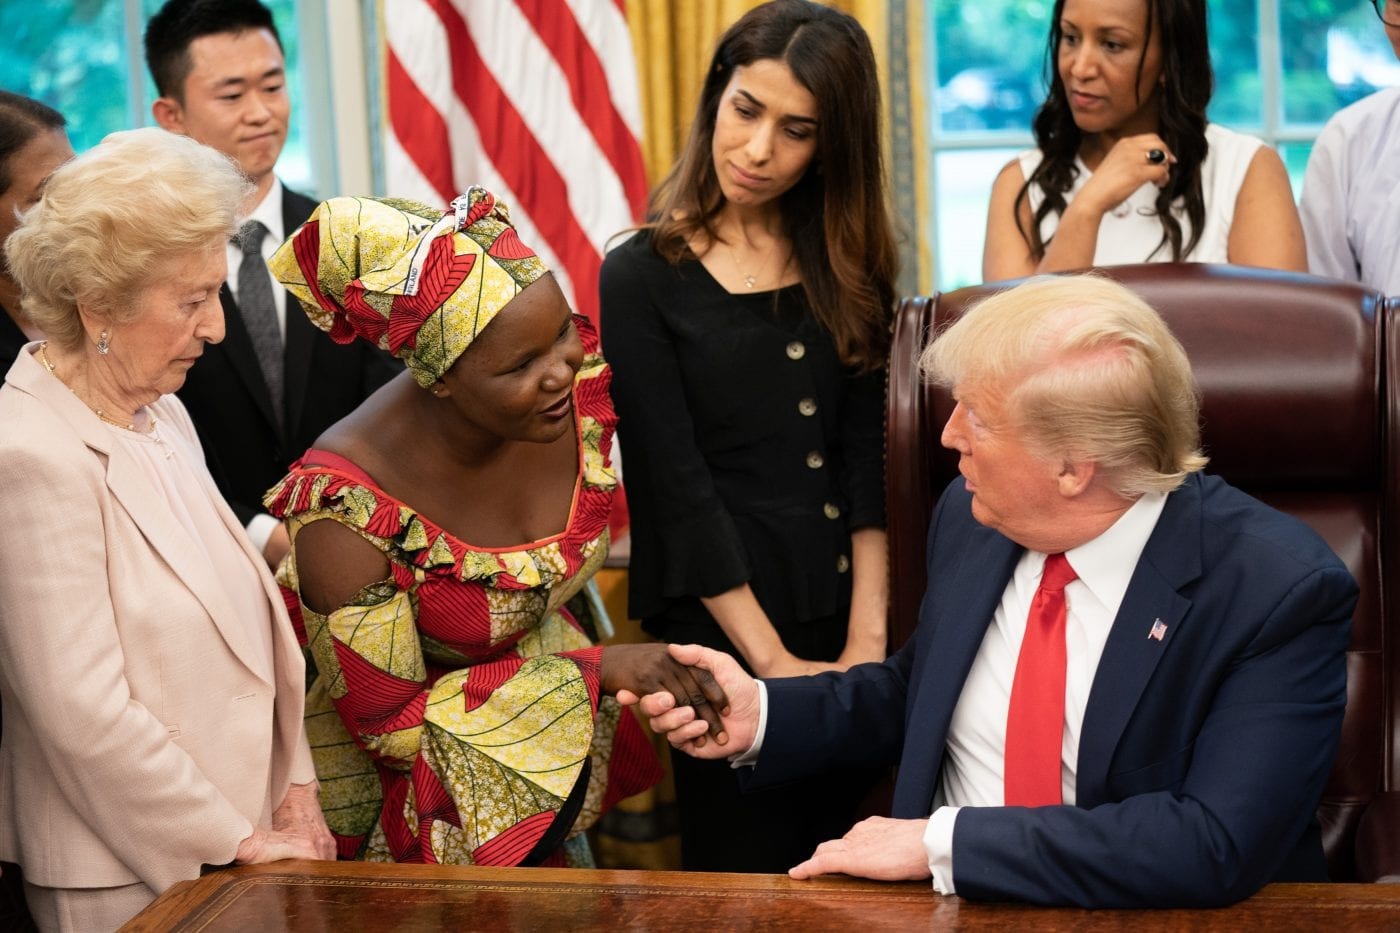 'I escaped from Boko Haram': Nigerian believer Esther tells her story to U.S. President Trump